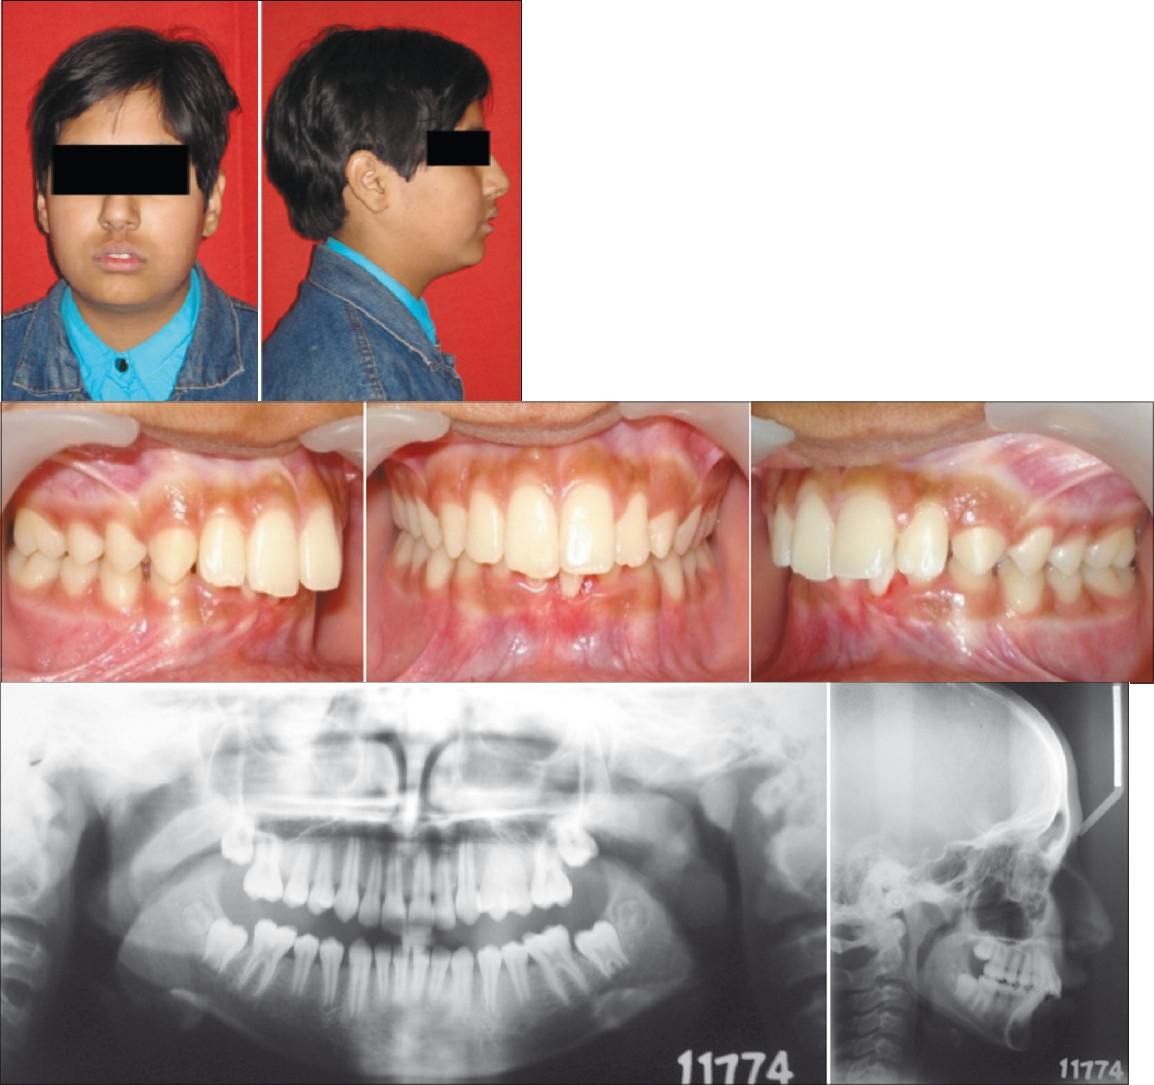 Figure 4a: Pretreatment extra-oral photographs